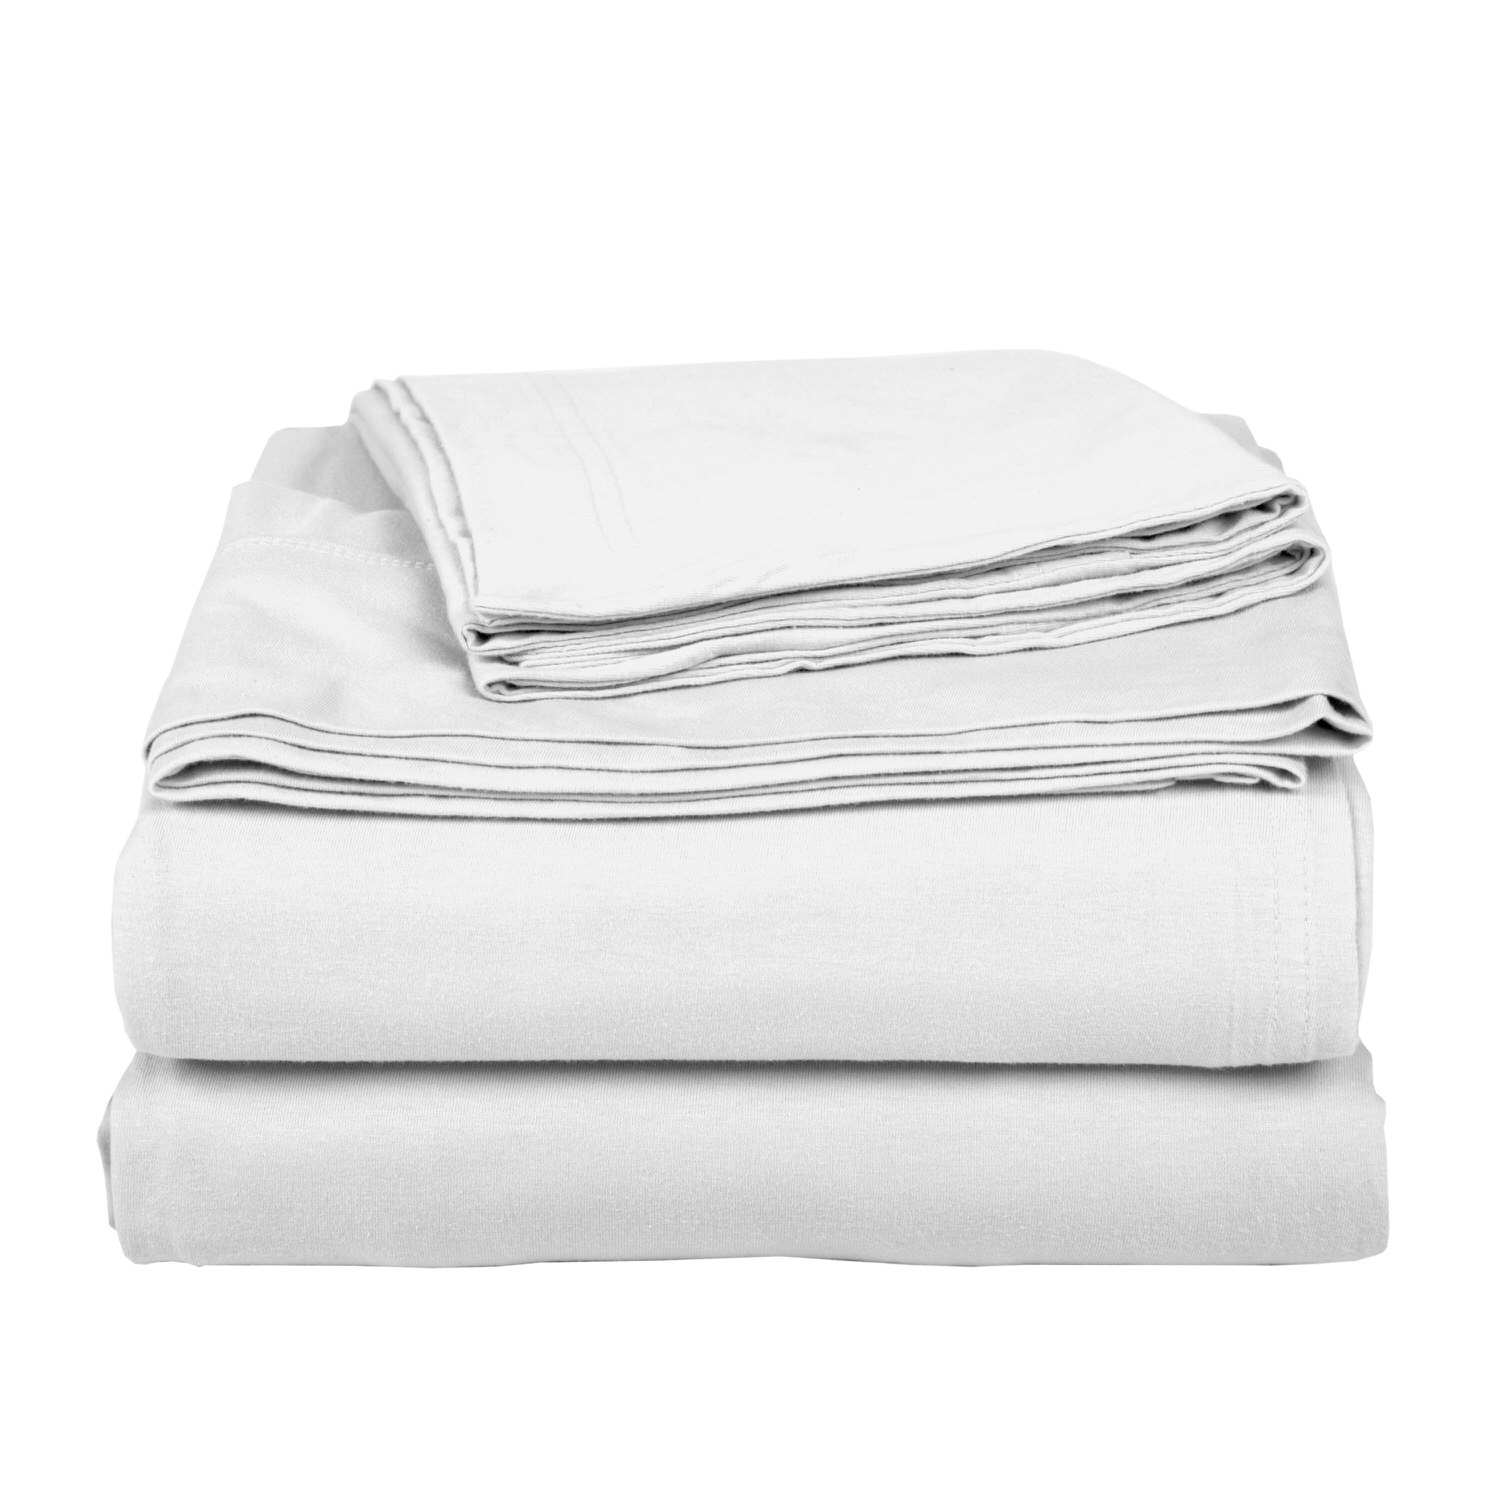 Cotton White Bed Sheet Set